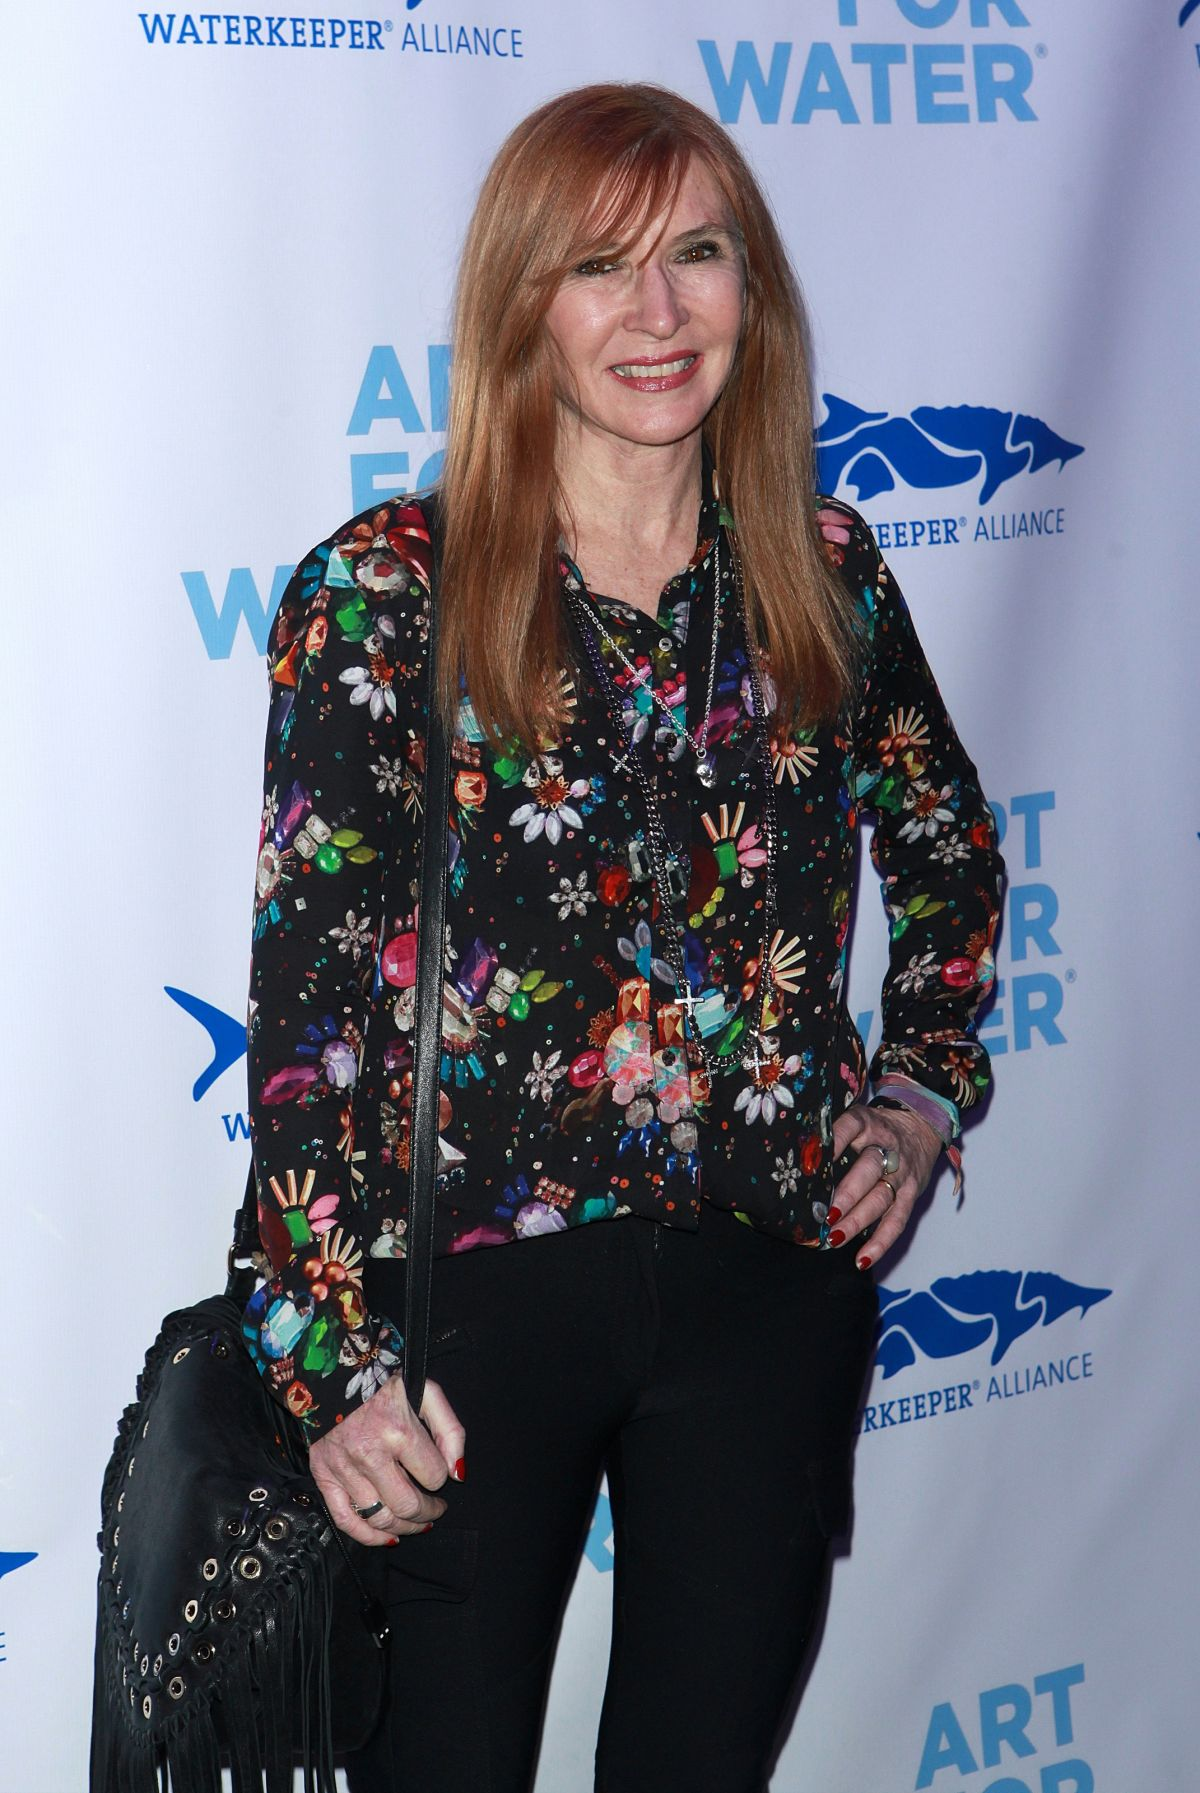 NICOLE MILLER at Art for Water Benefiring Waterkeeper Alliance Charity in New York 02/06/2017